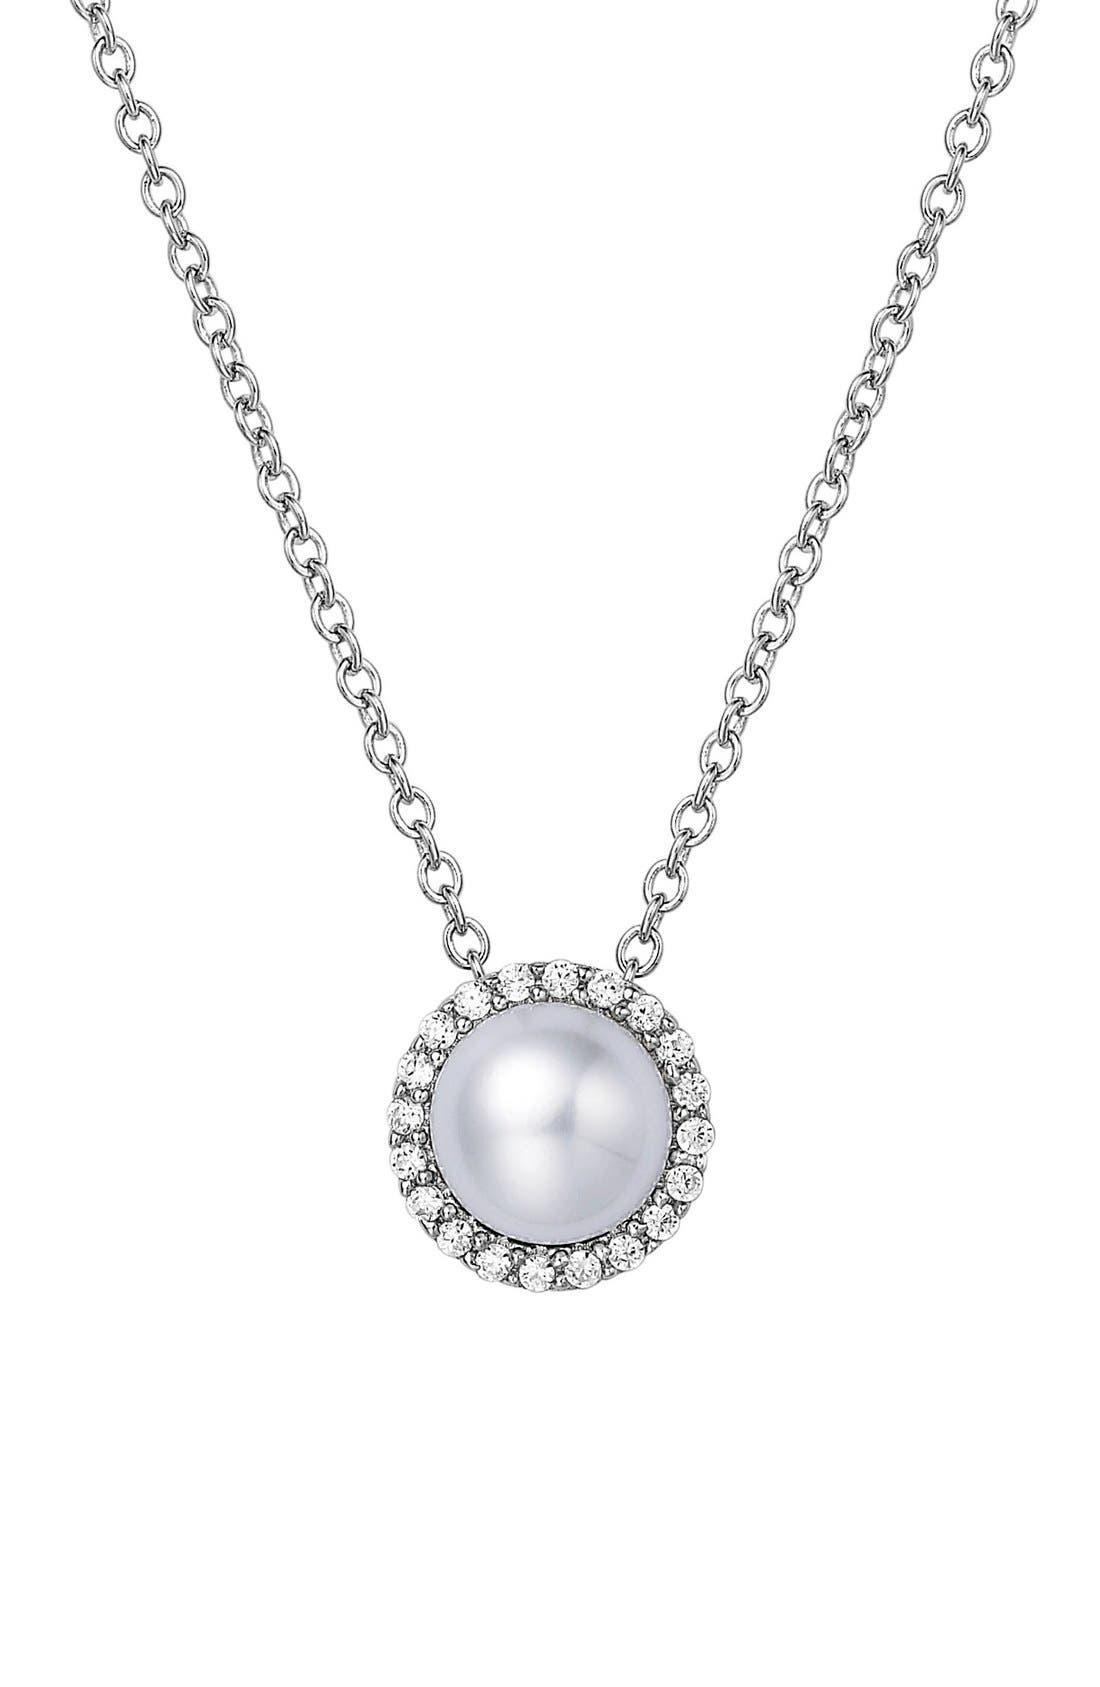 Birthstone Halo Pendant Necklace,                             Main thumbnail 1, color,                             JUNE PEARL / SILVER